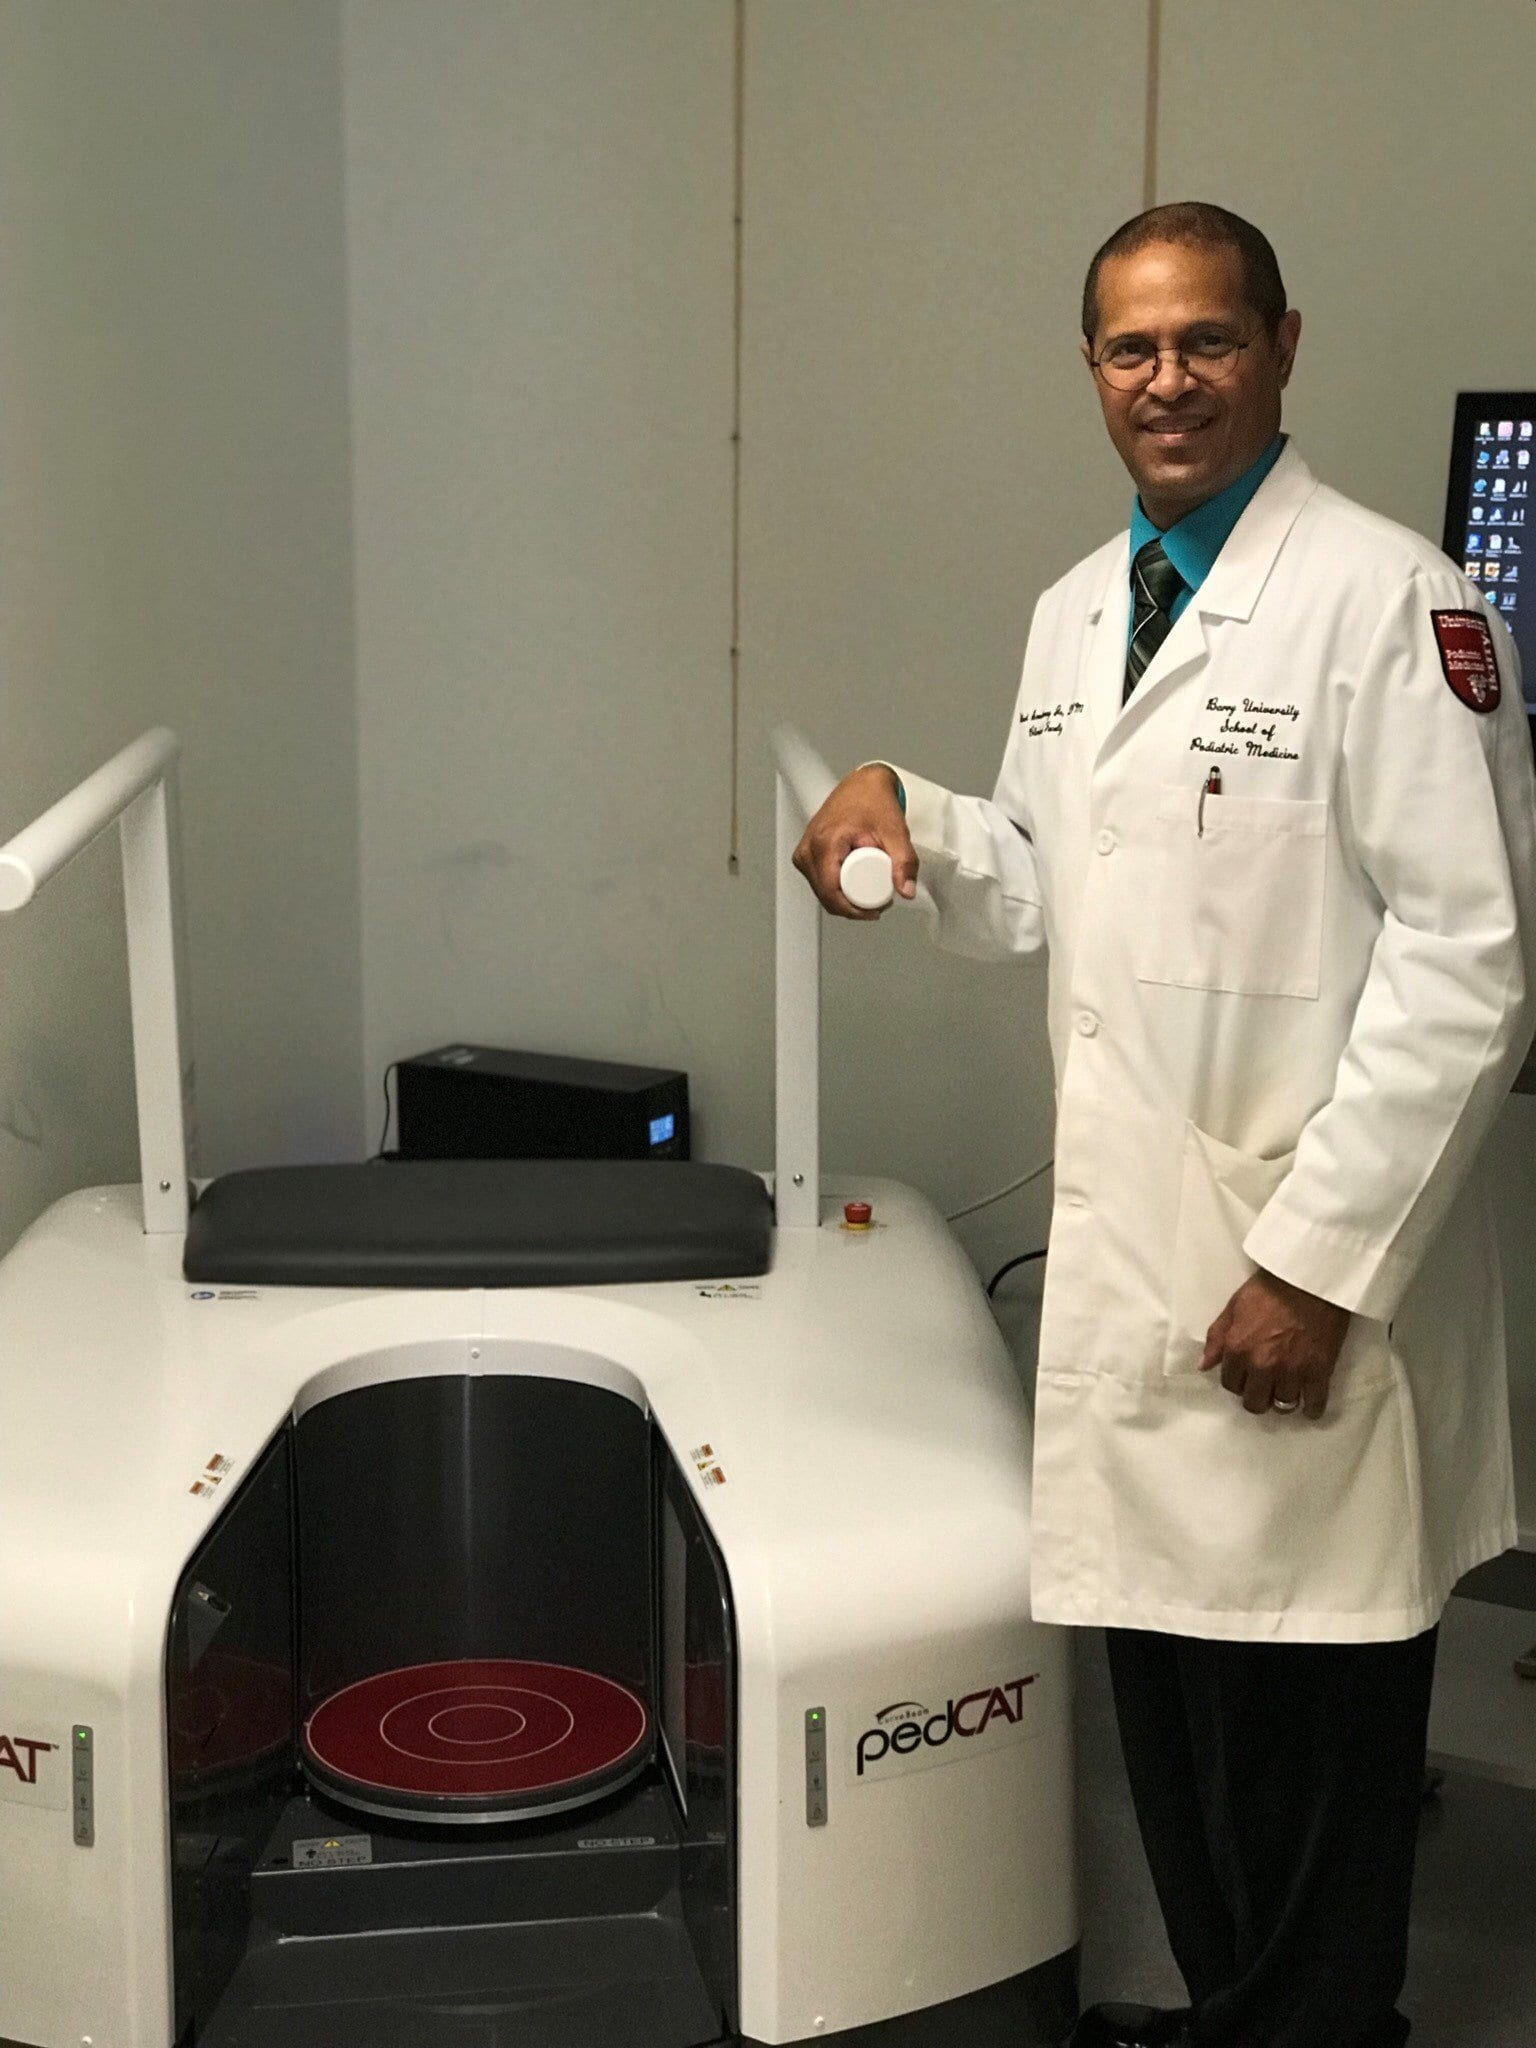 Barry University School Of Podiatric Medicine Acquires The PedCAT For Research